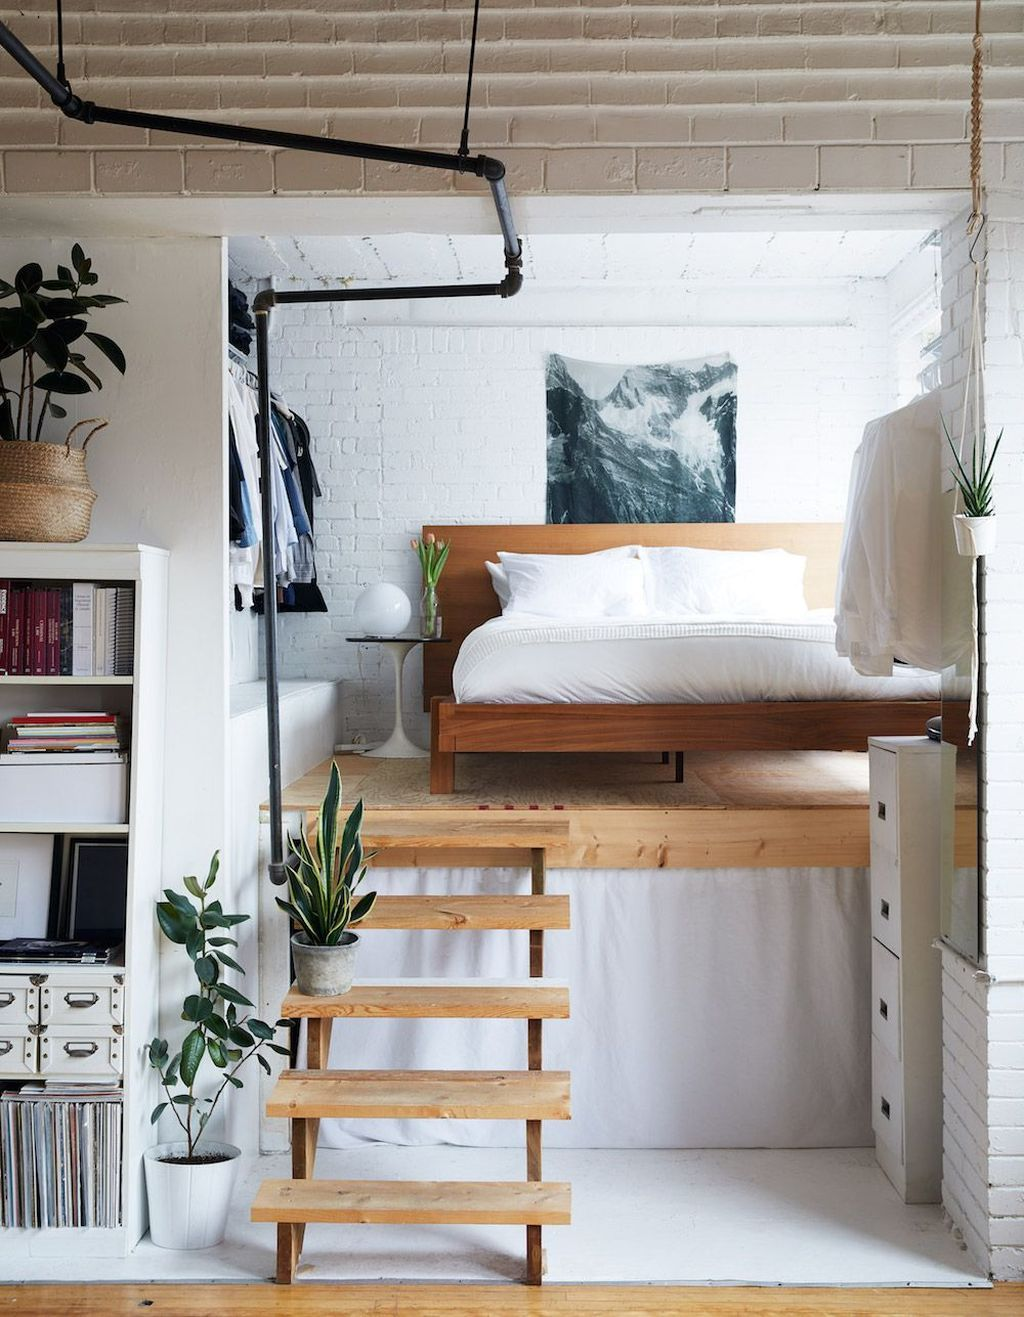 stunning small attic bedroom design ideas dream universe pinterest house and home also rh in